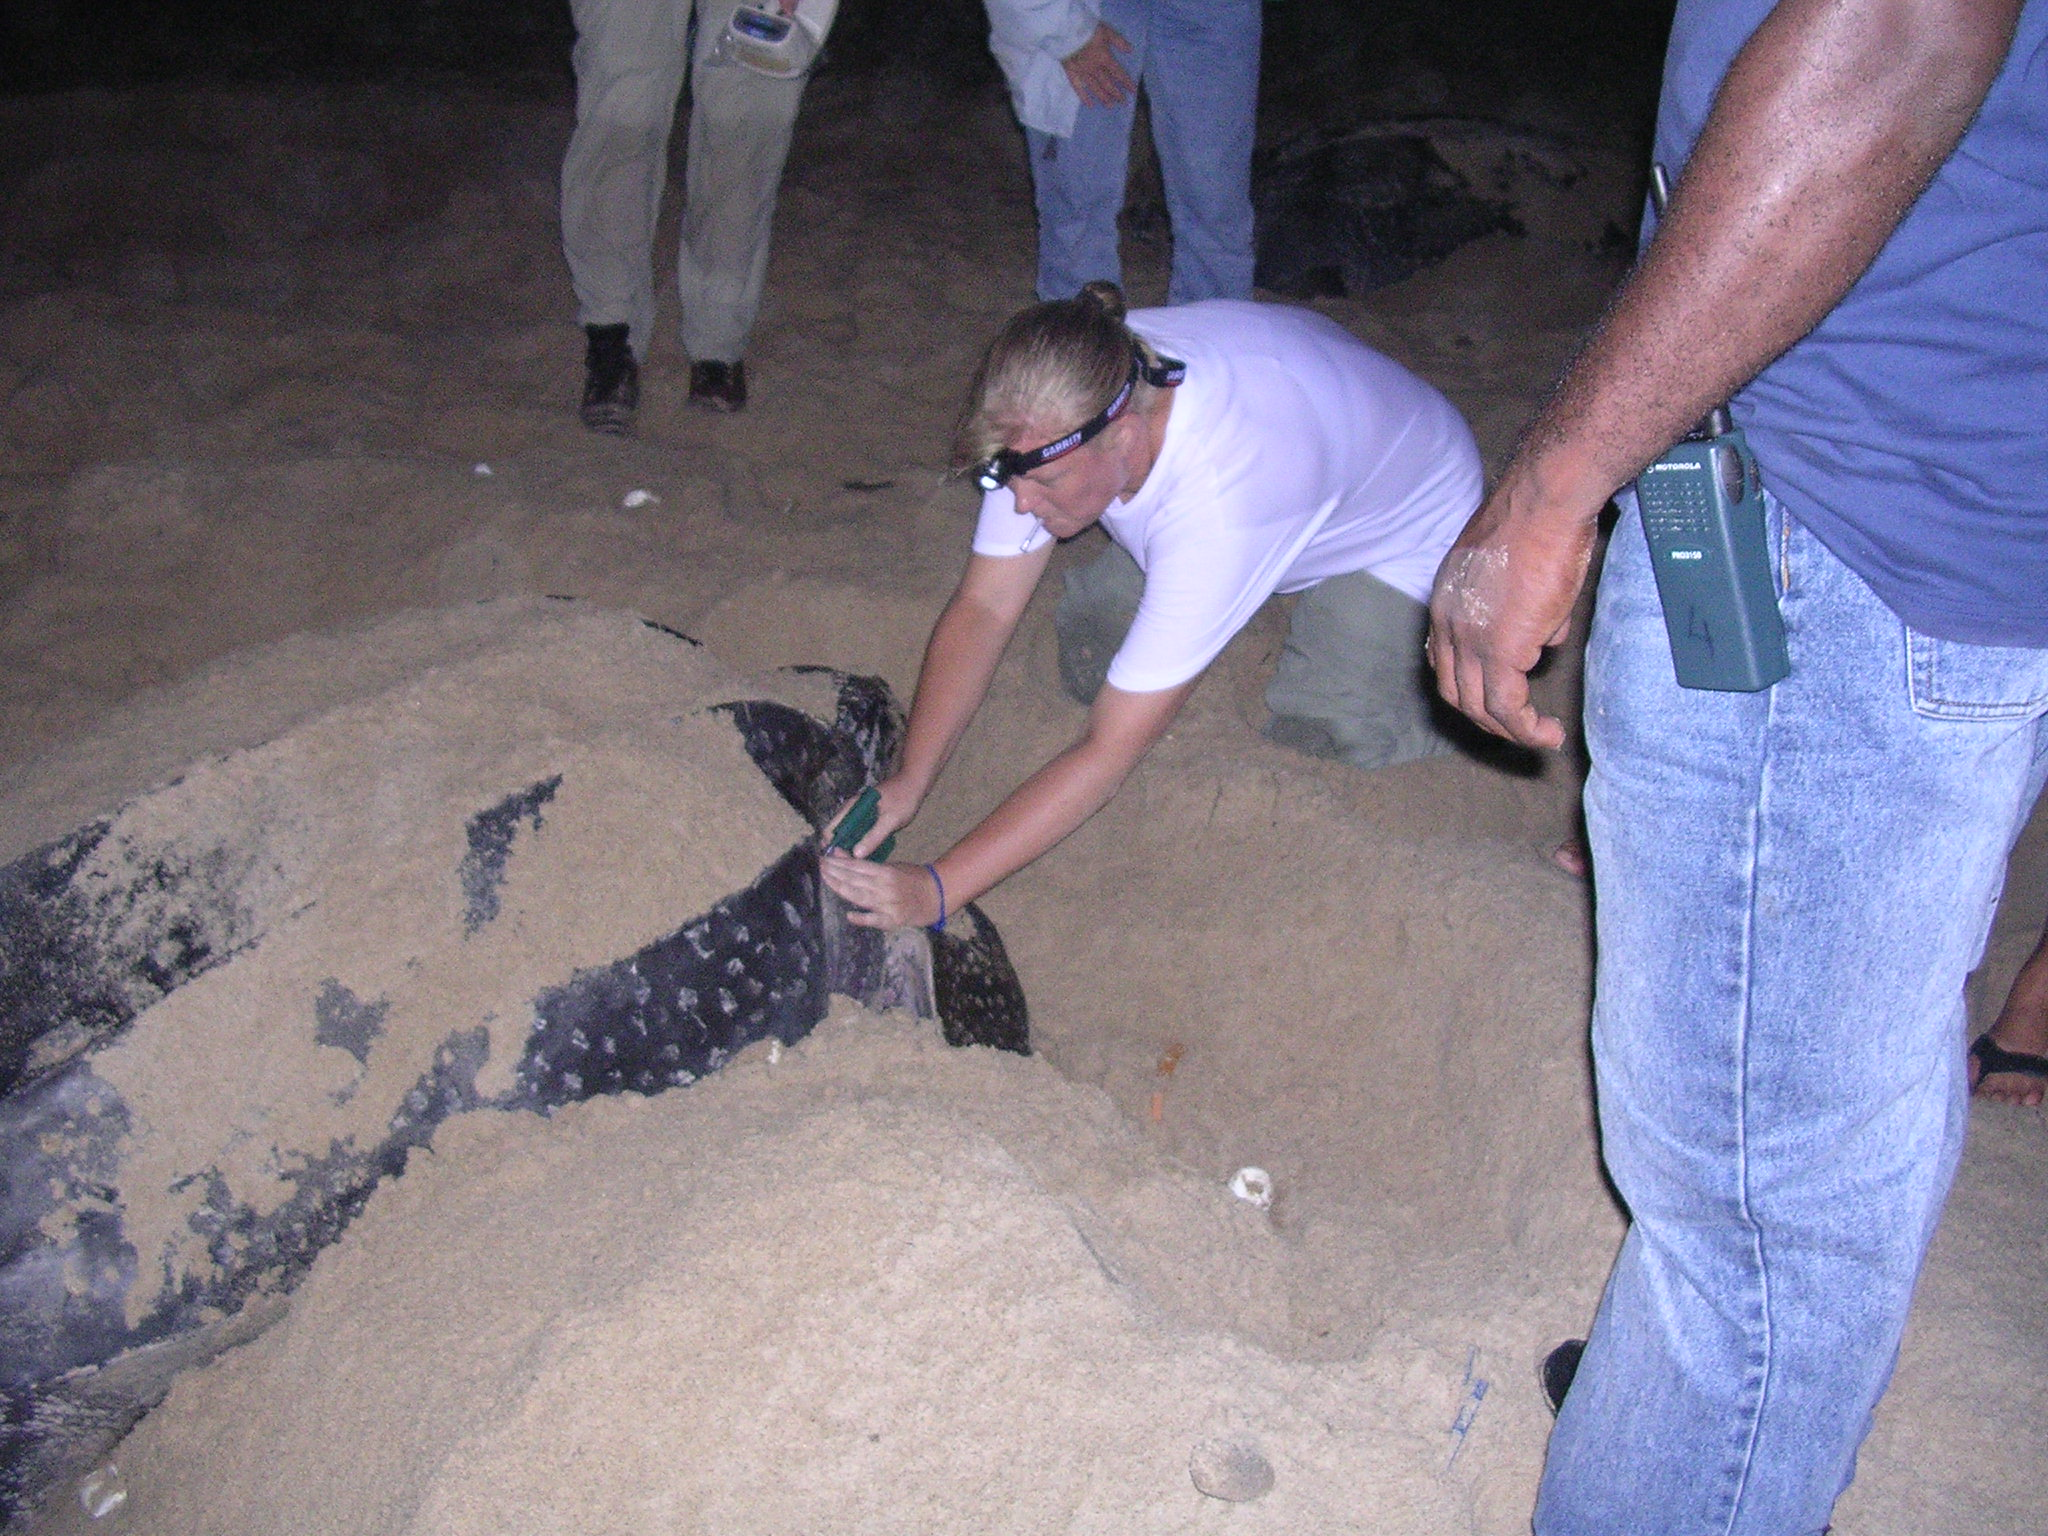 Leatherback in a trance laying eggs